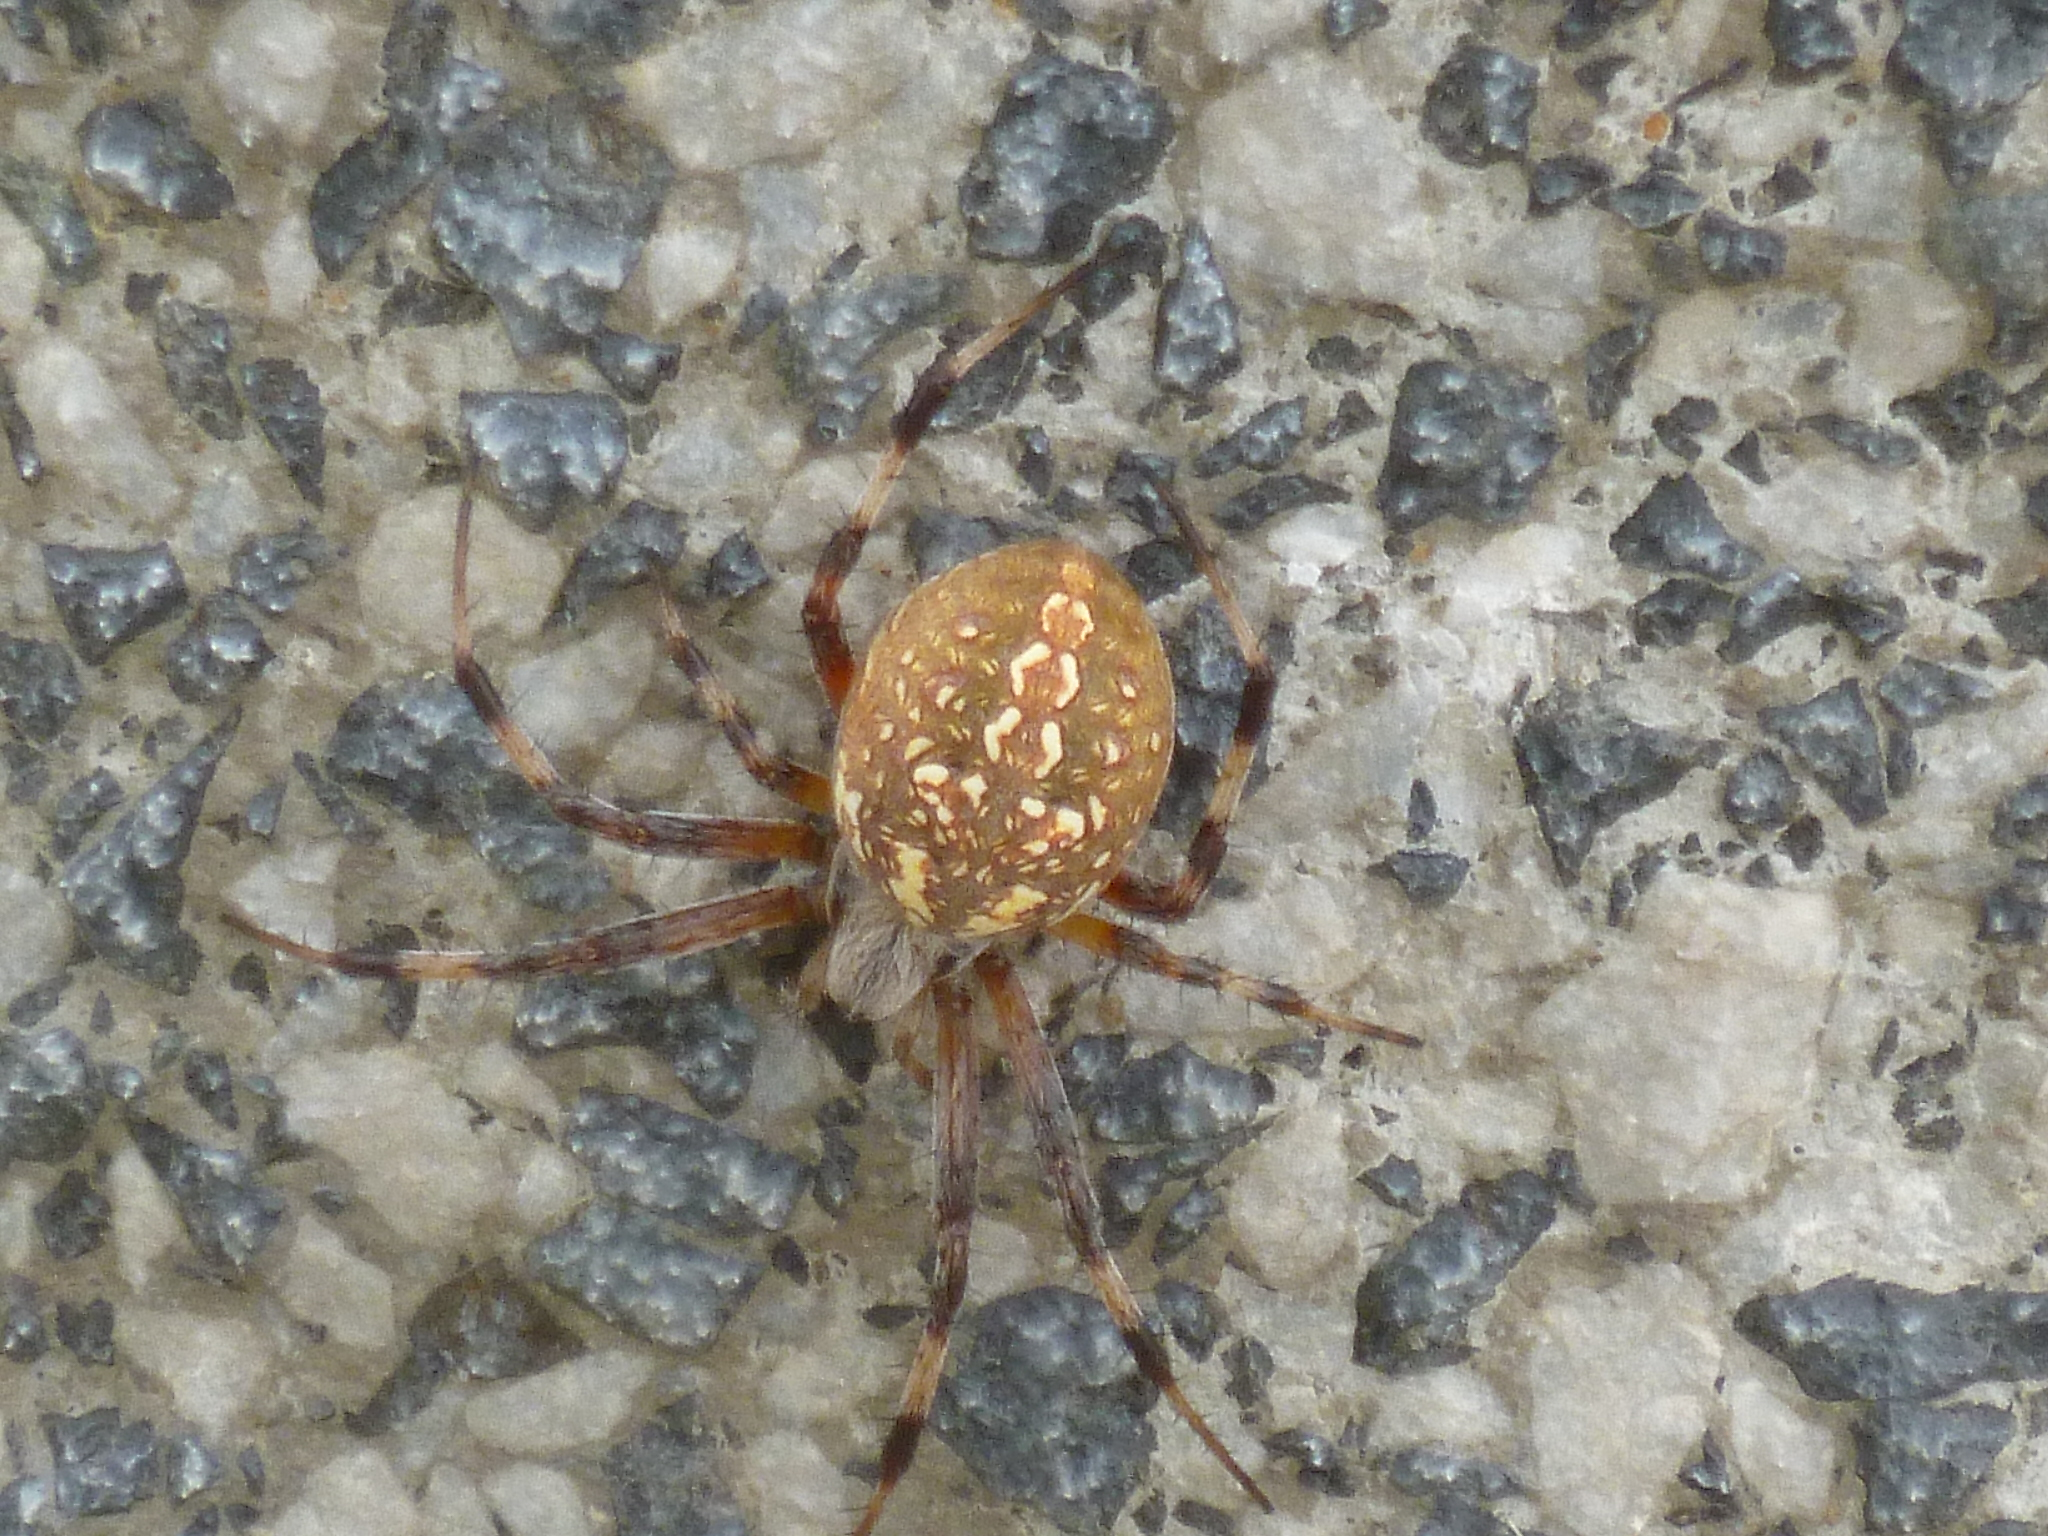 Brown Spider With Yellow And Black Striped Legs Brown Spider With Striped Legs